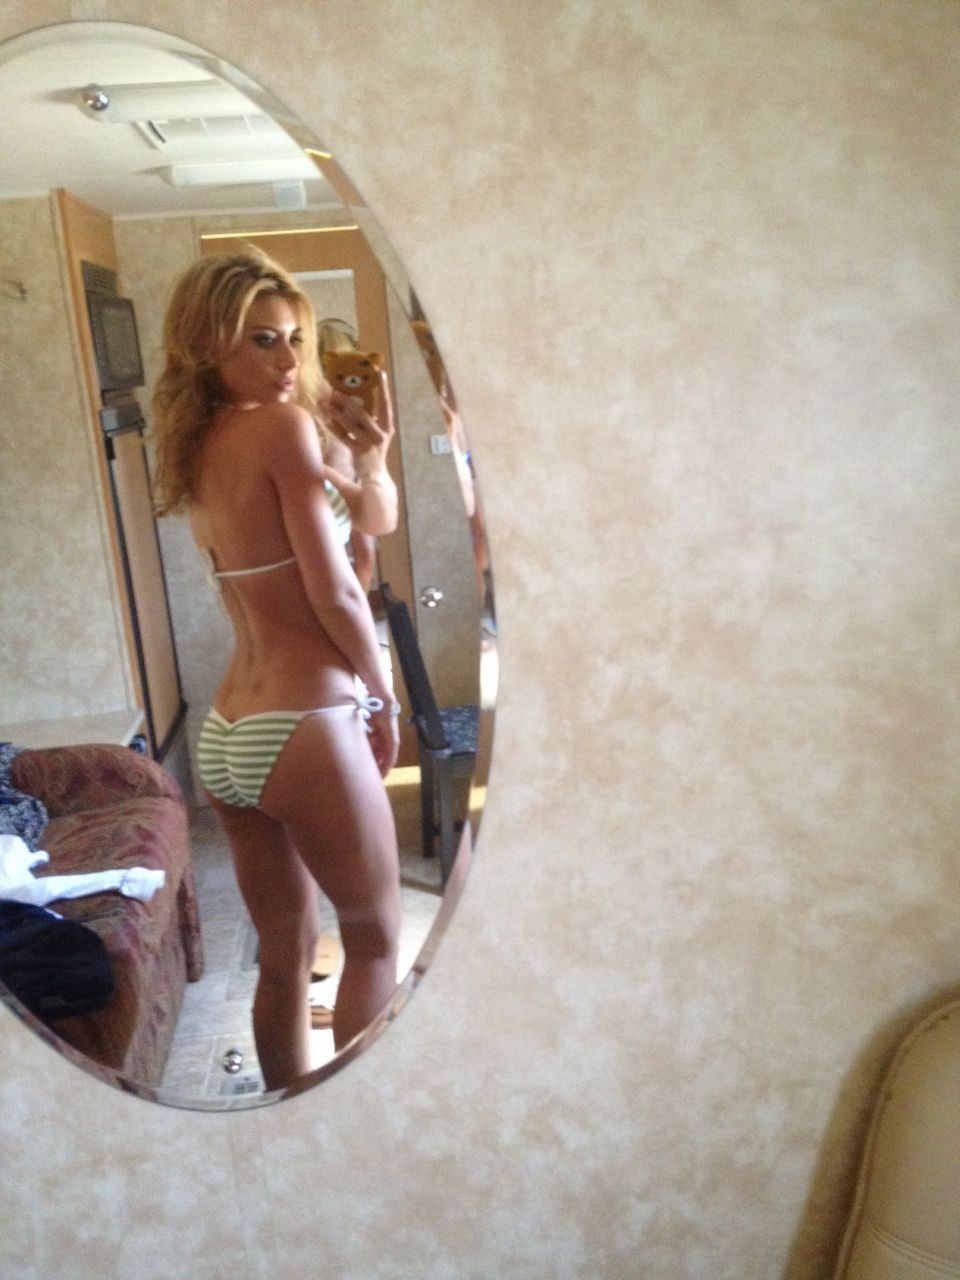 Aly Michalka Naked Pictures pin on alyson michalka